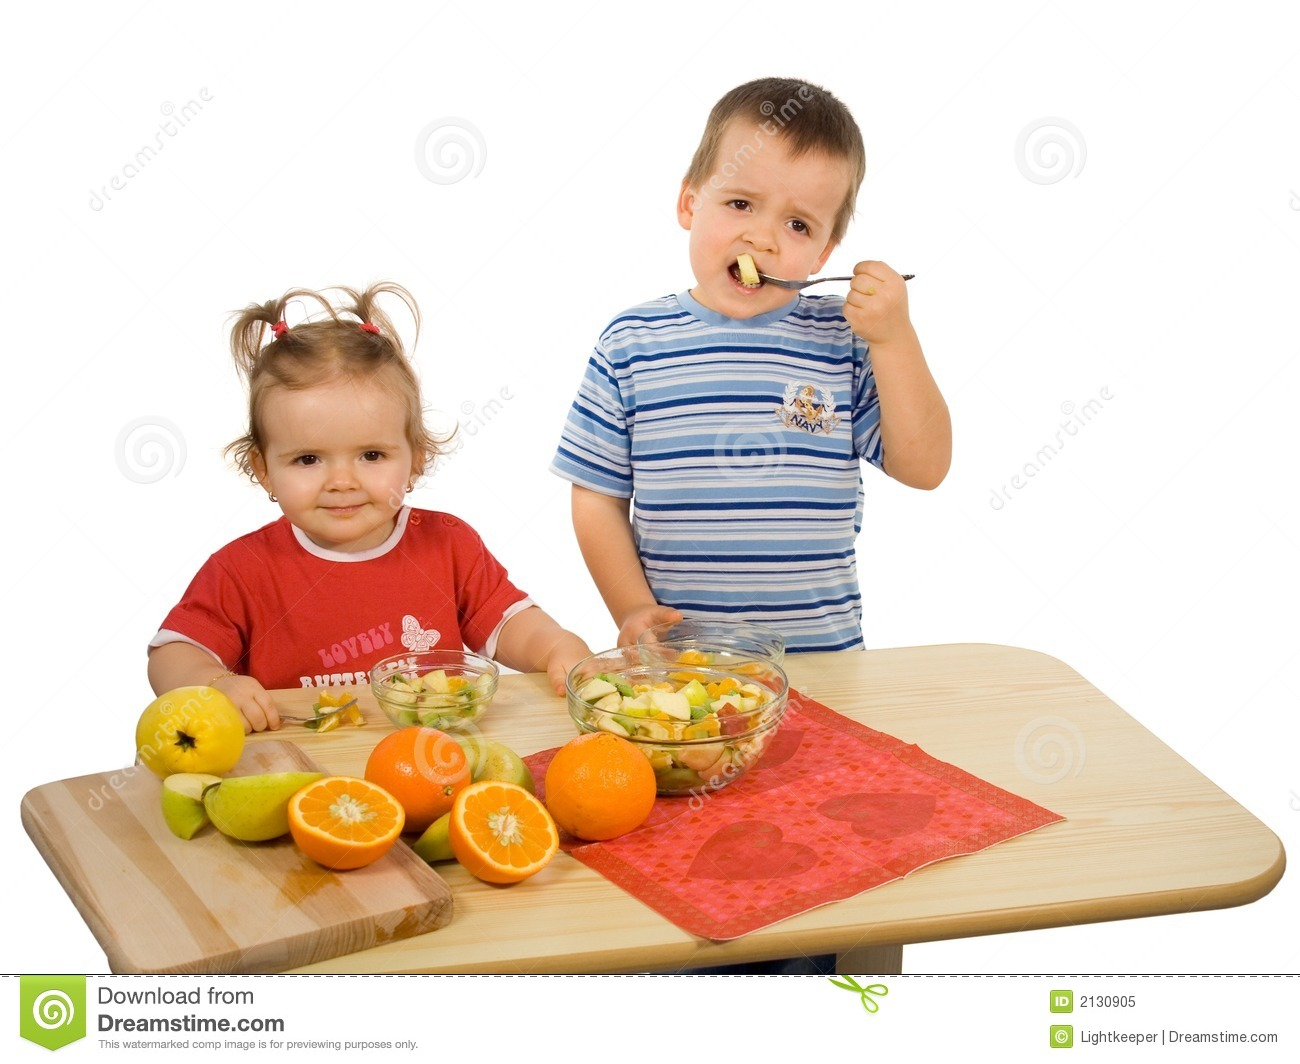 Children, girl and boy, eating fruit salad (isolated).